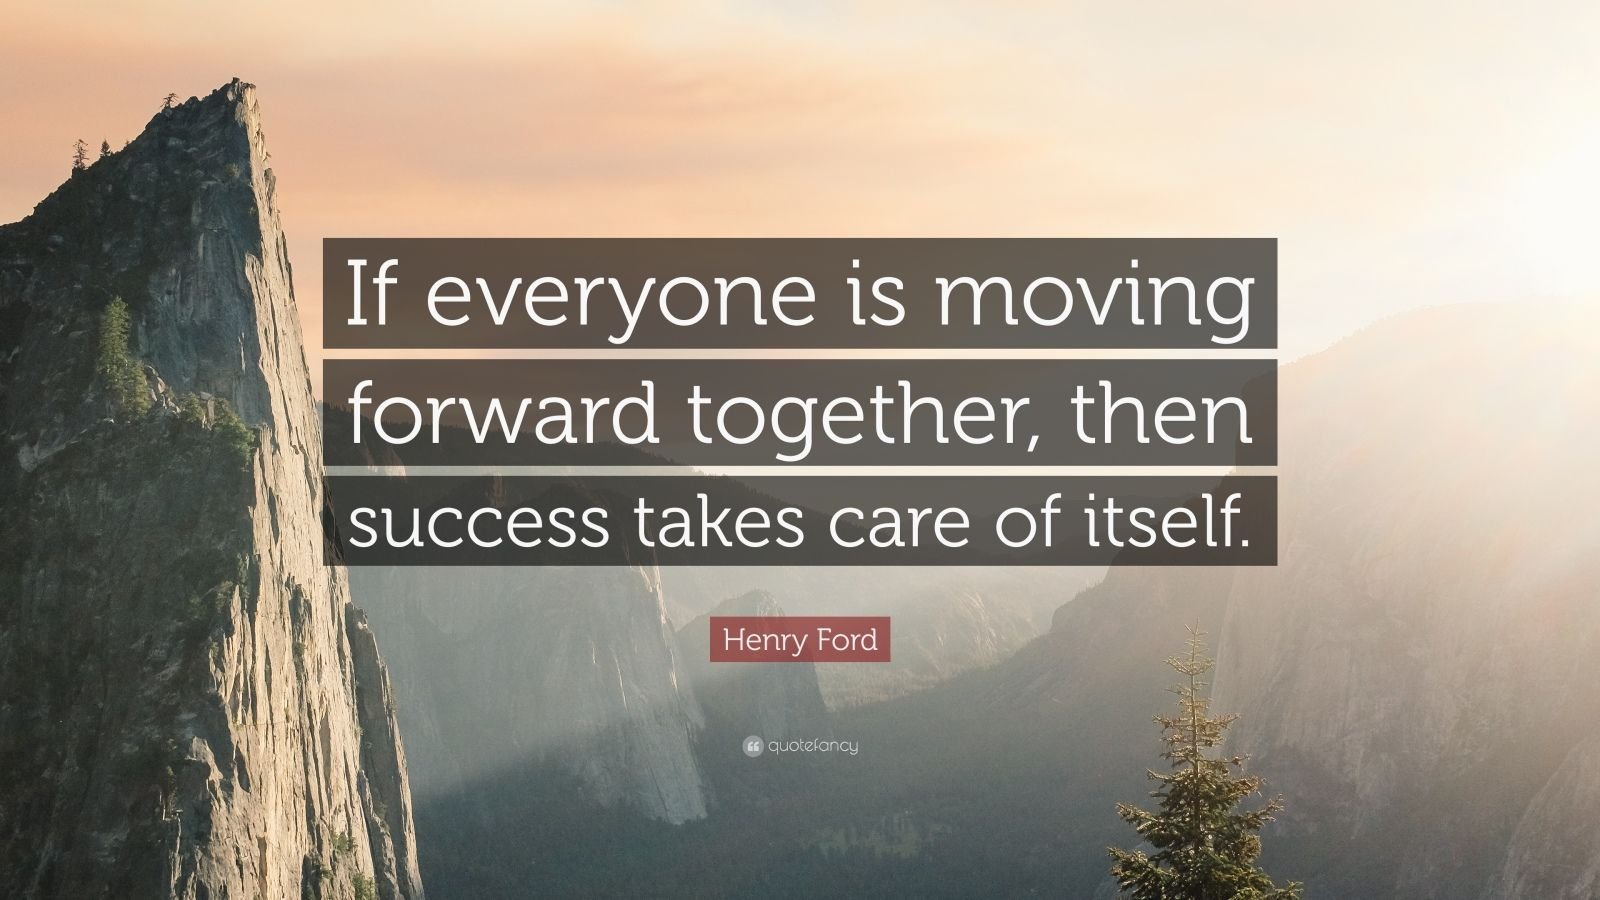 henry ford quote �if everyone is moving forward together